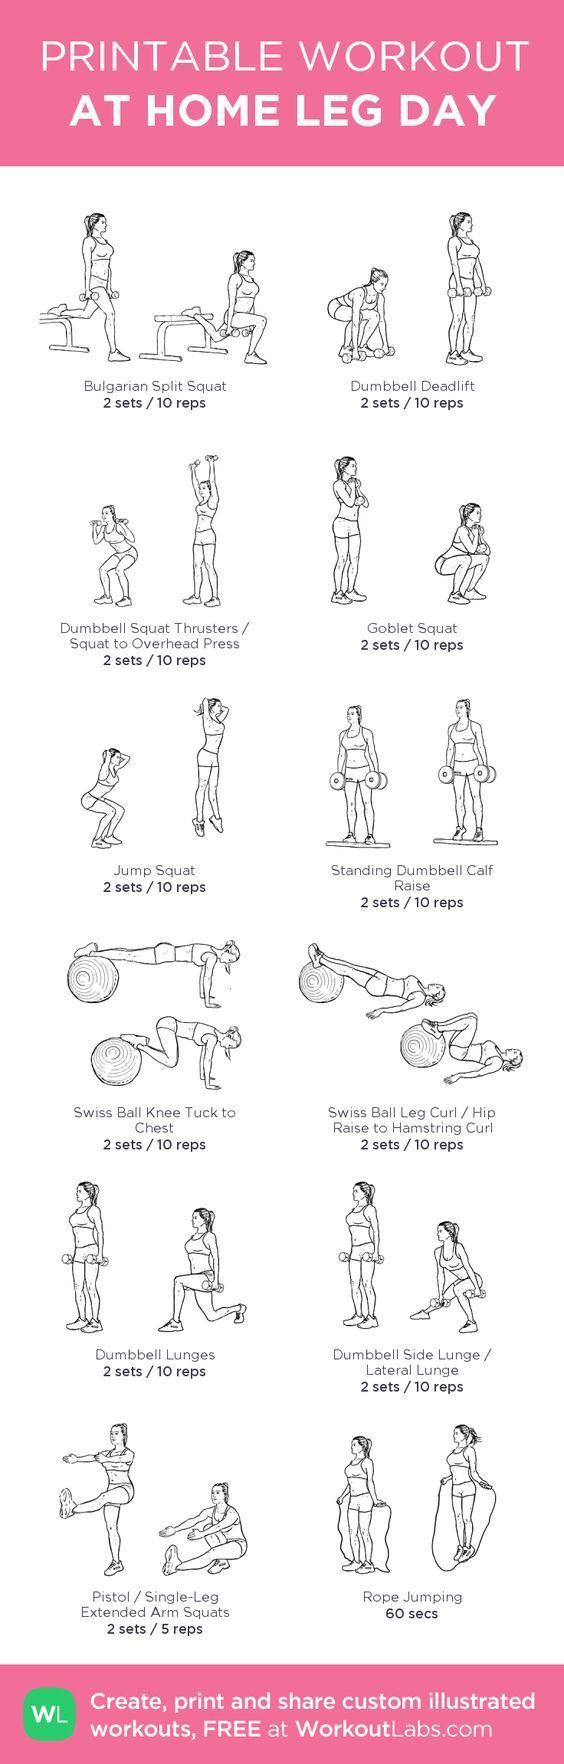 At-home leg day workout. Build custom workout routines or browse pre-made workouts #workouts::